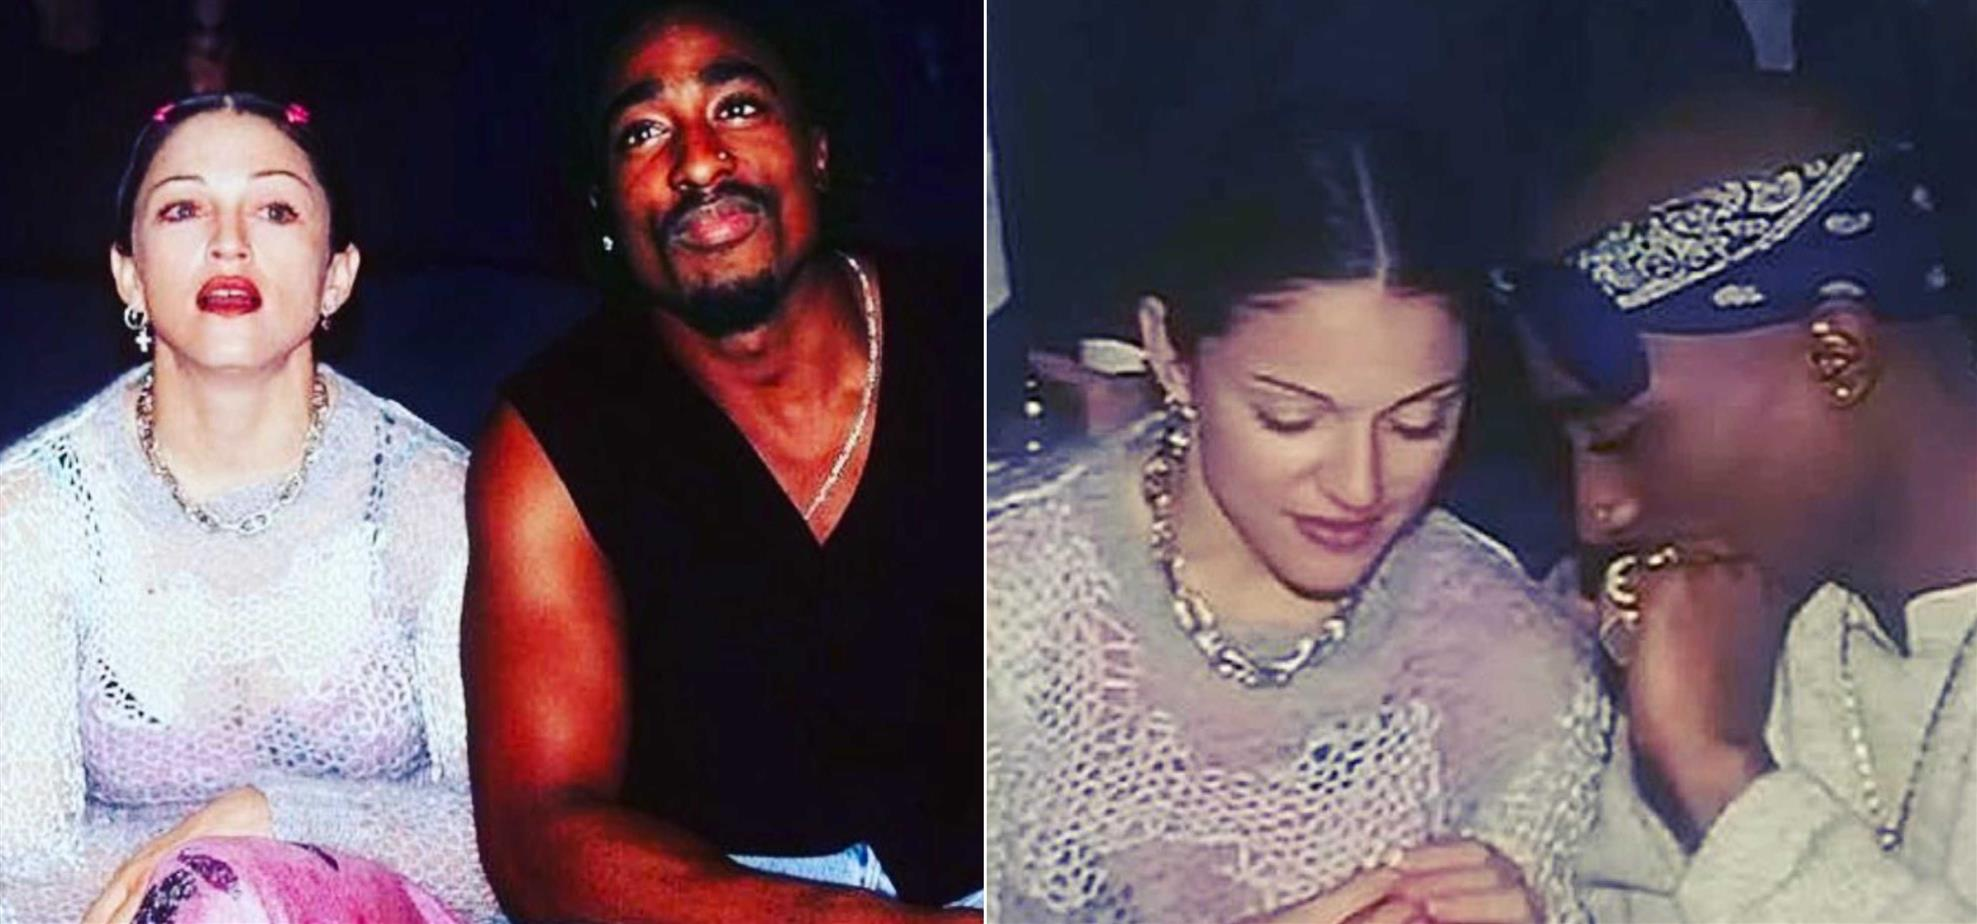 Post Breakup Letter From Tupac To Madonna Proves He Dumped Her